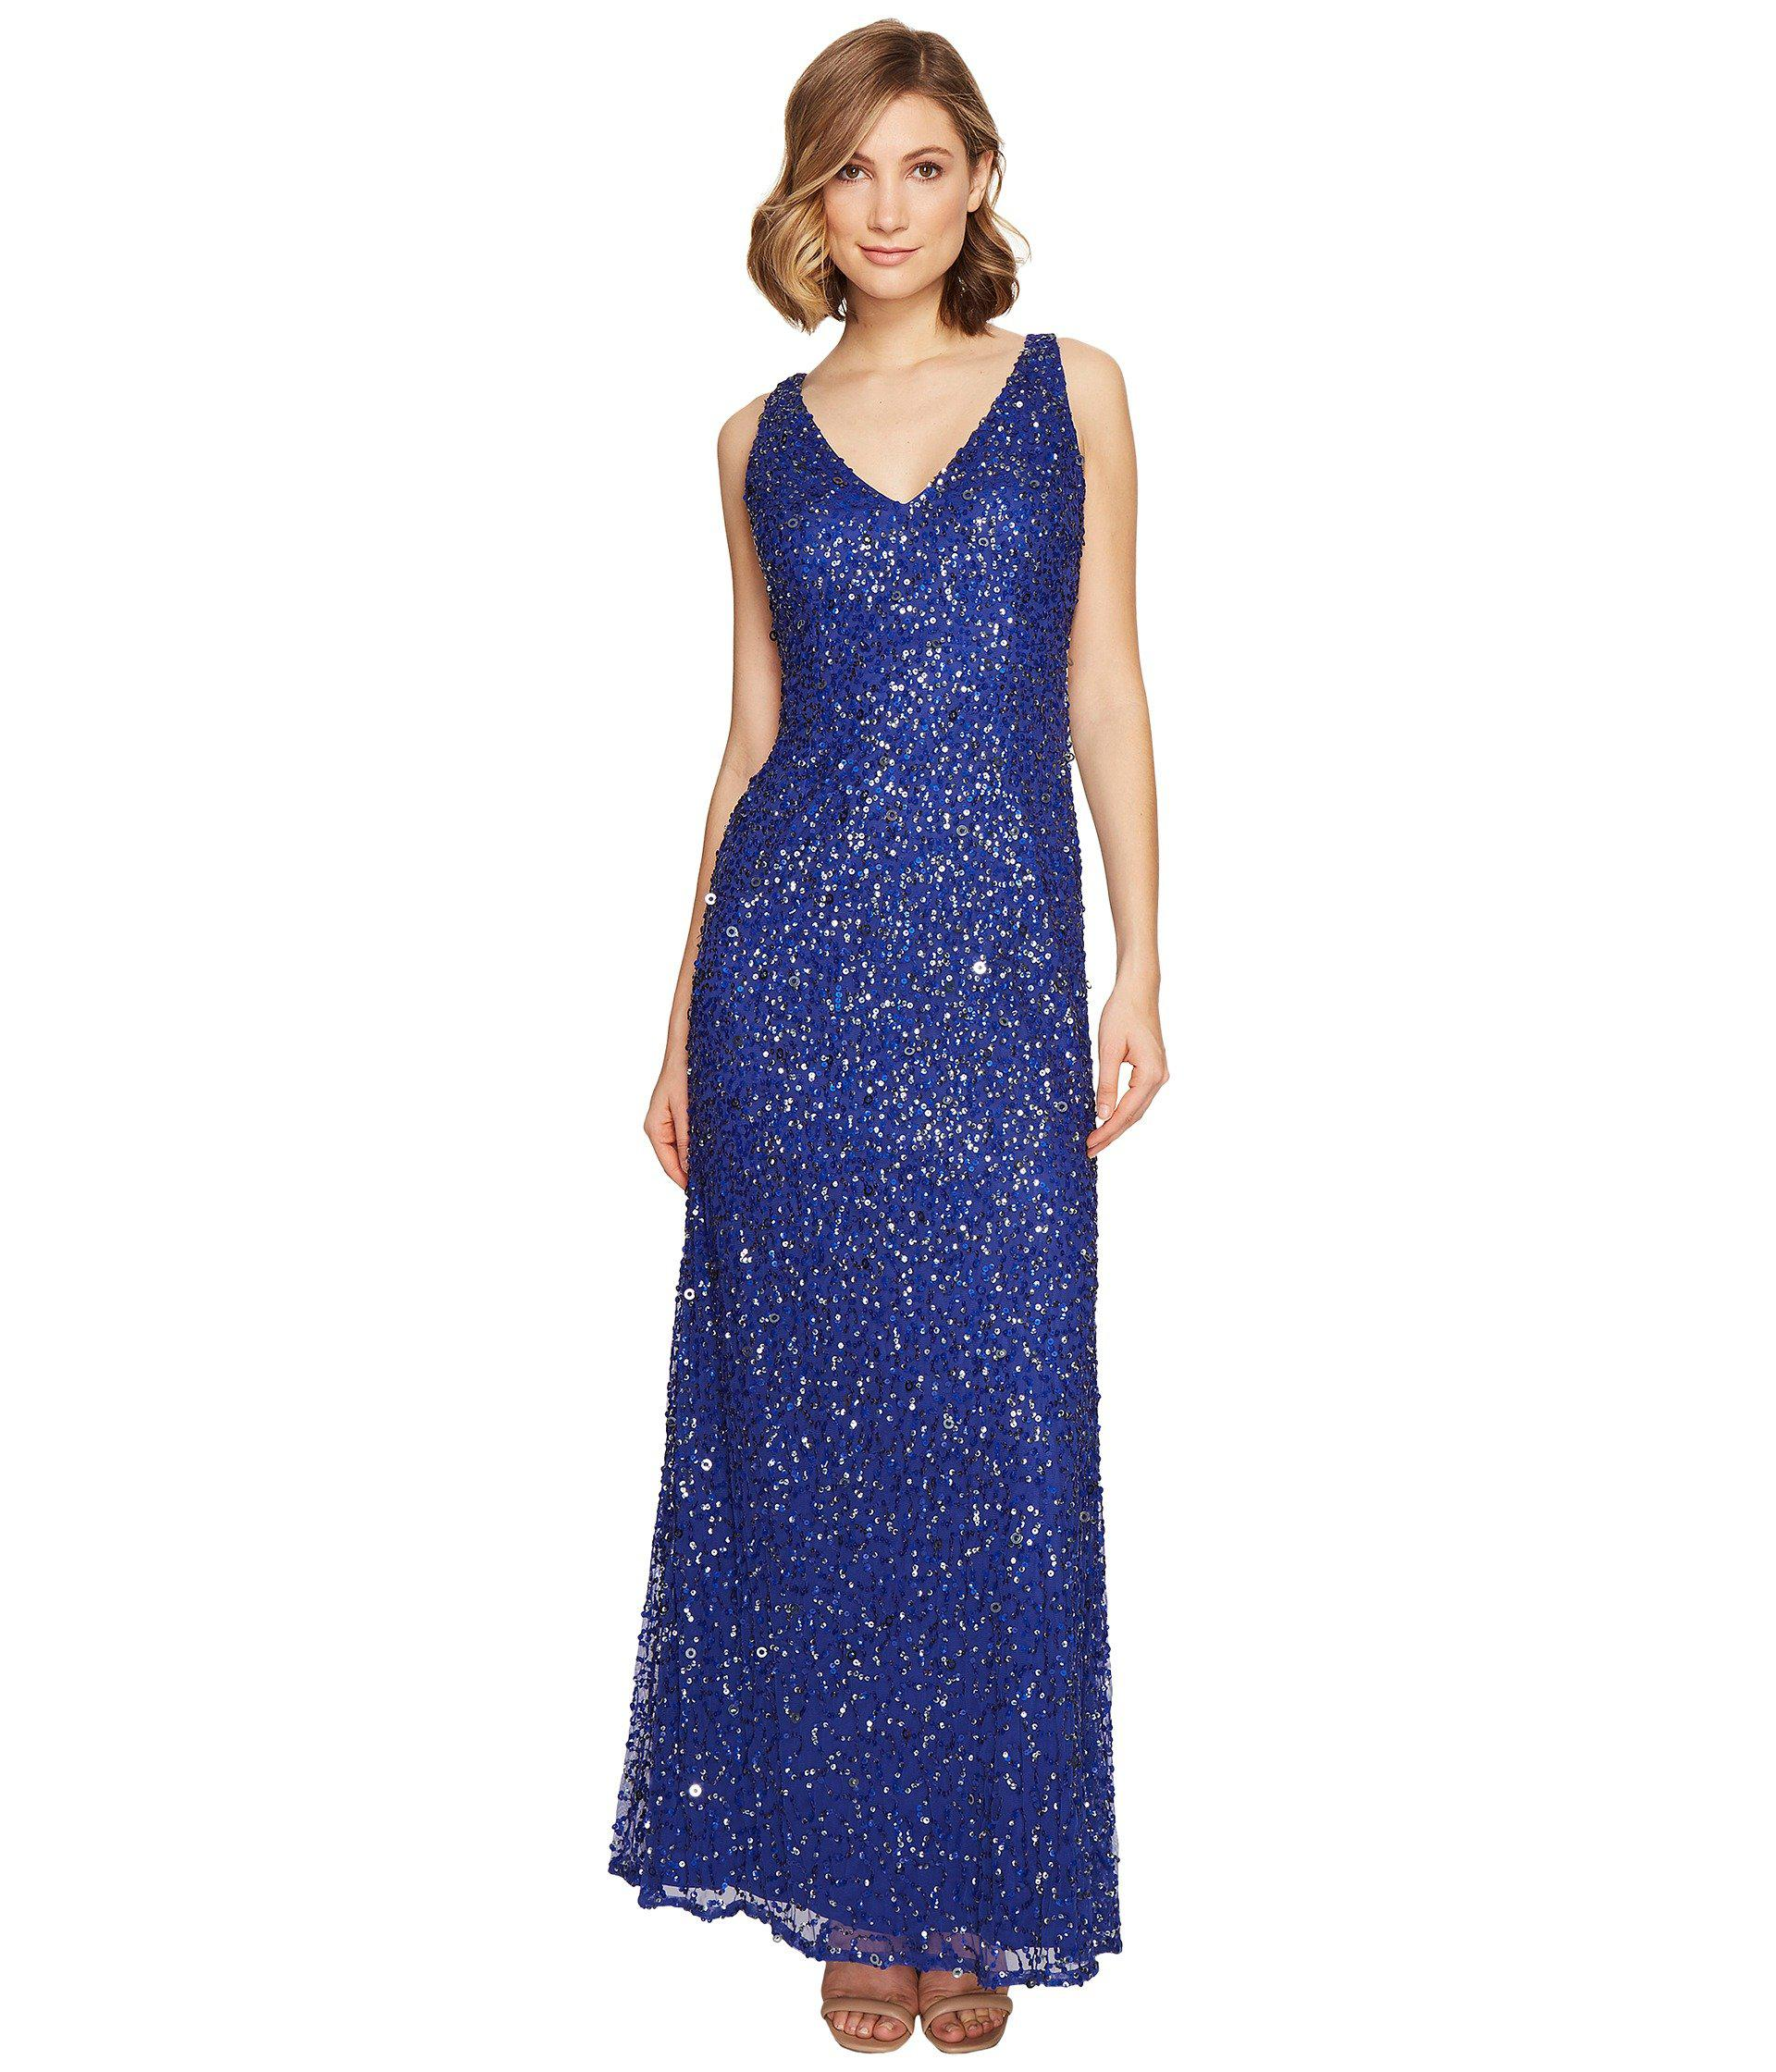 Lyst - Adrianna Papell Sleeveless Beaded Mermaid Gown in Blue - Save 42%